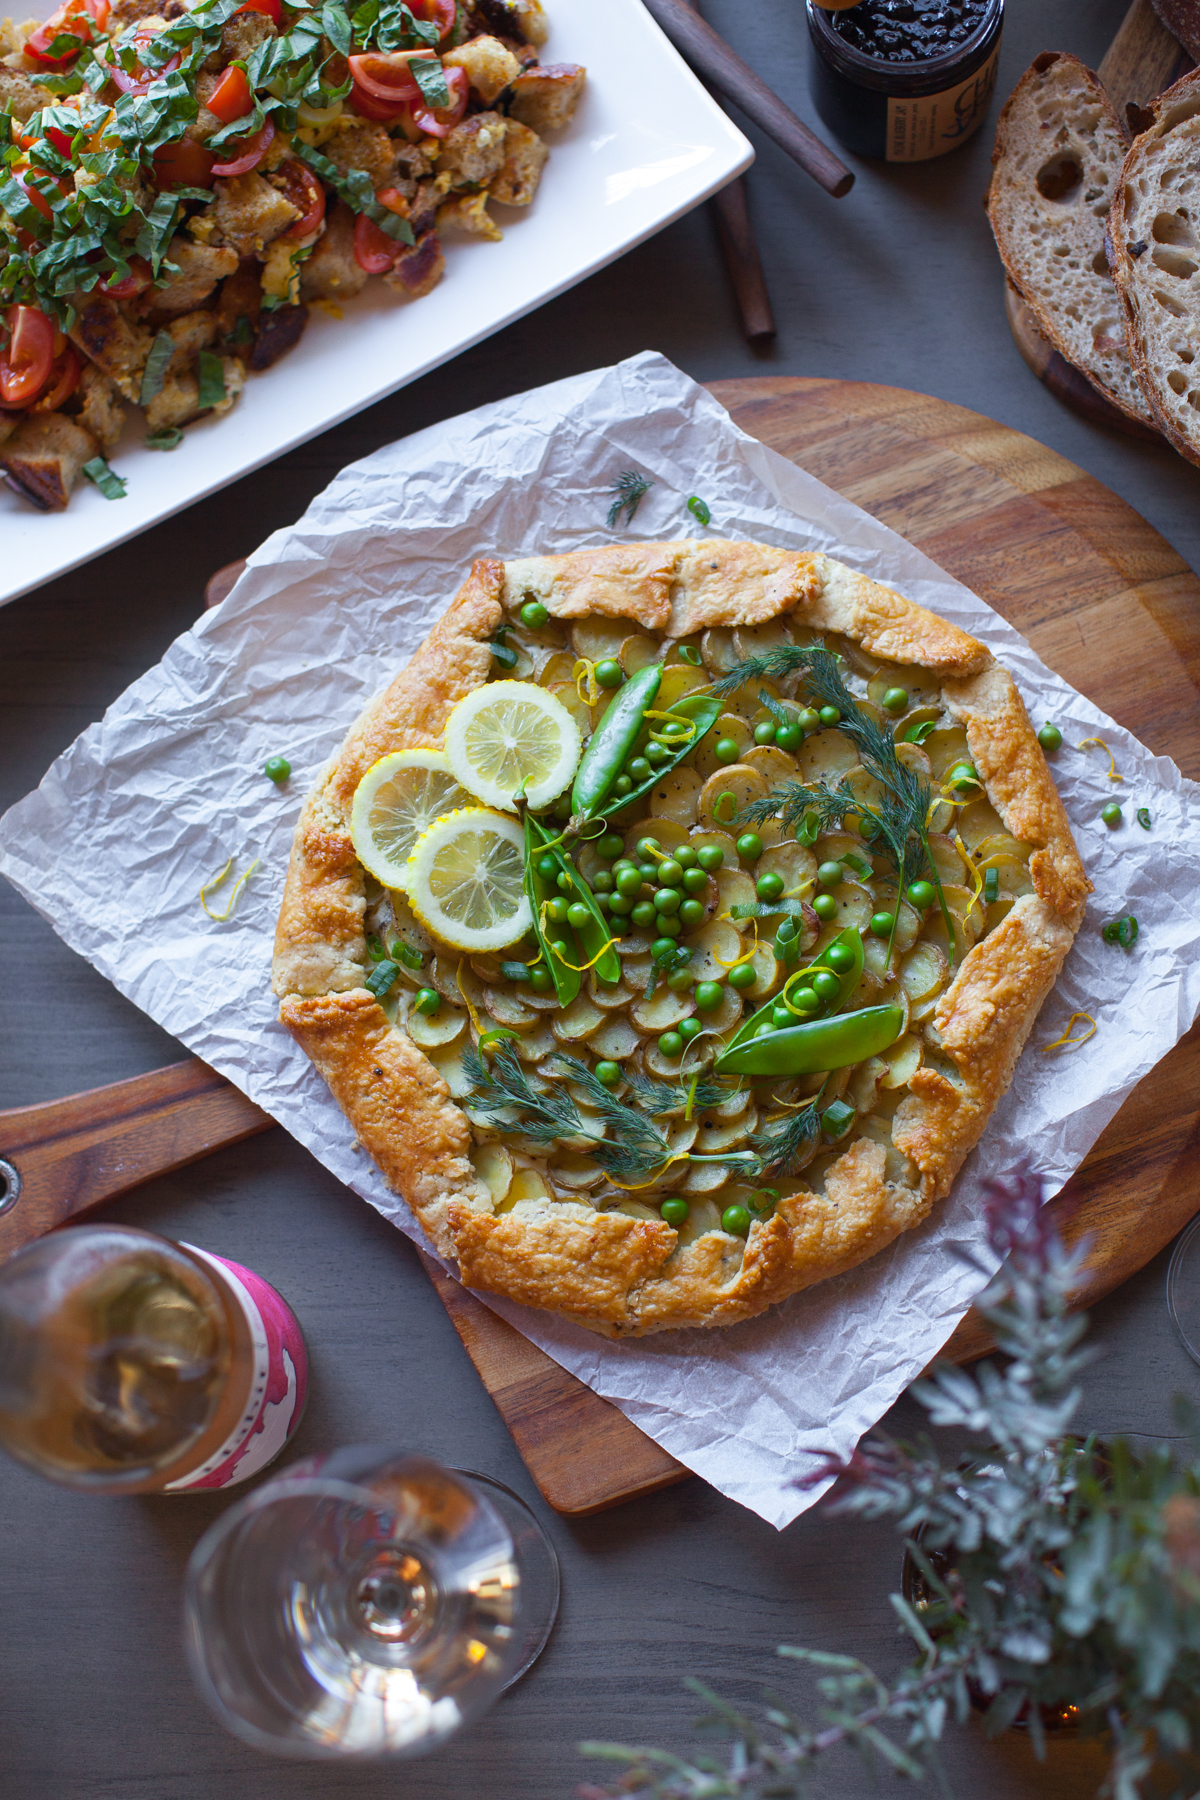 This Ricotta, Potato & Spring Pea Galette is right at home amongst this stunning spread.